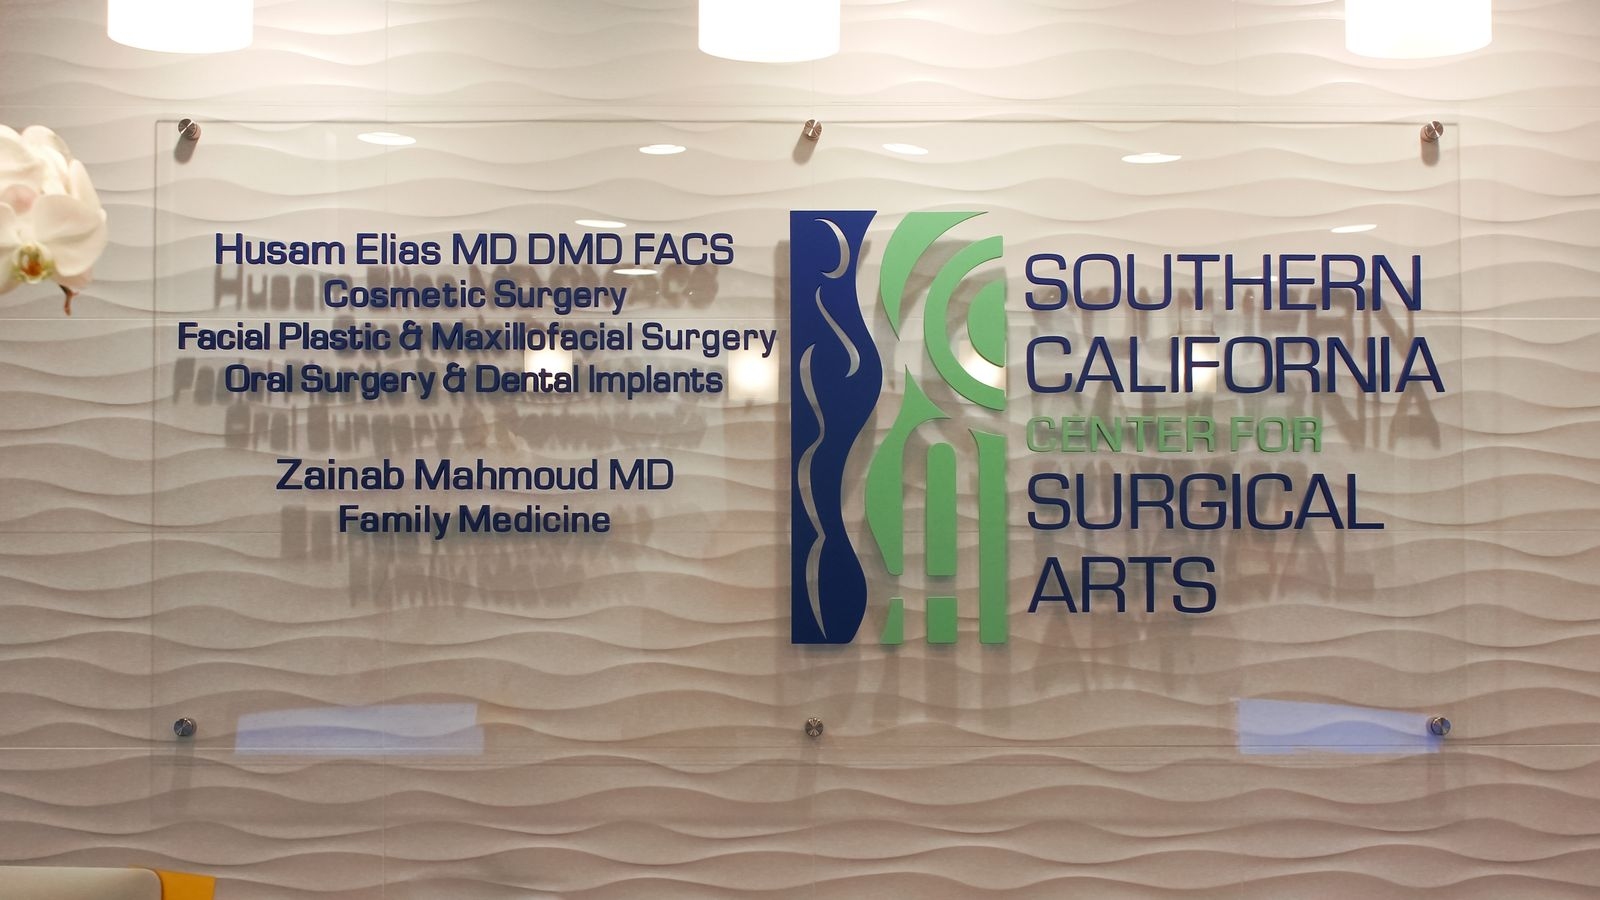 Southern California Center for Surgical Arts interior business sign in an elegant style made of acrylic for lobby branding